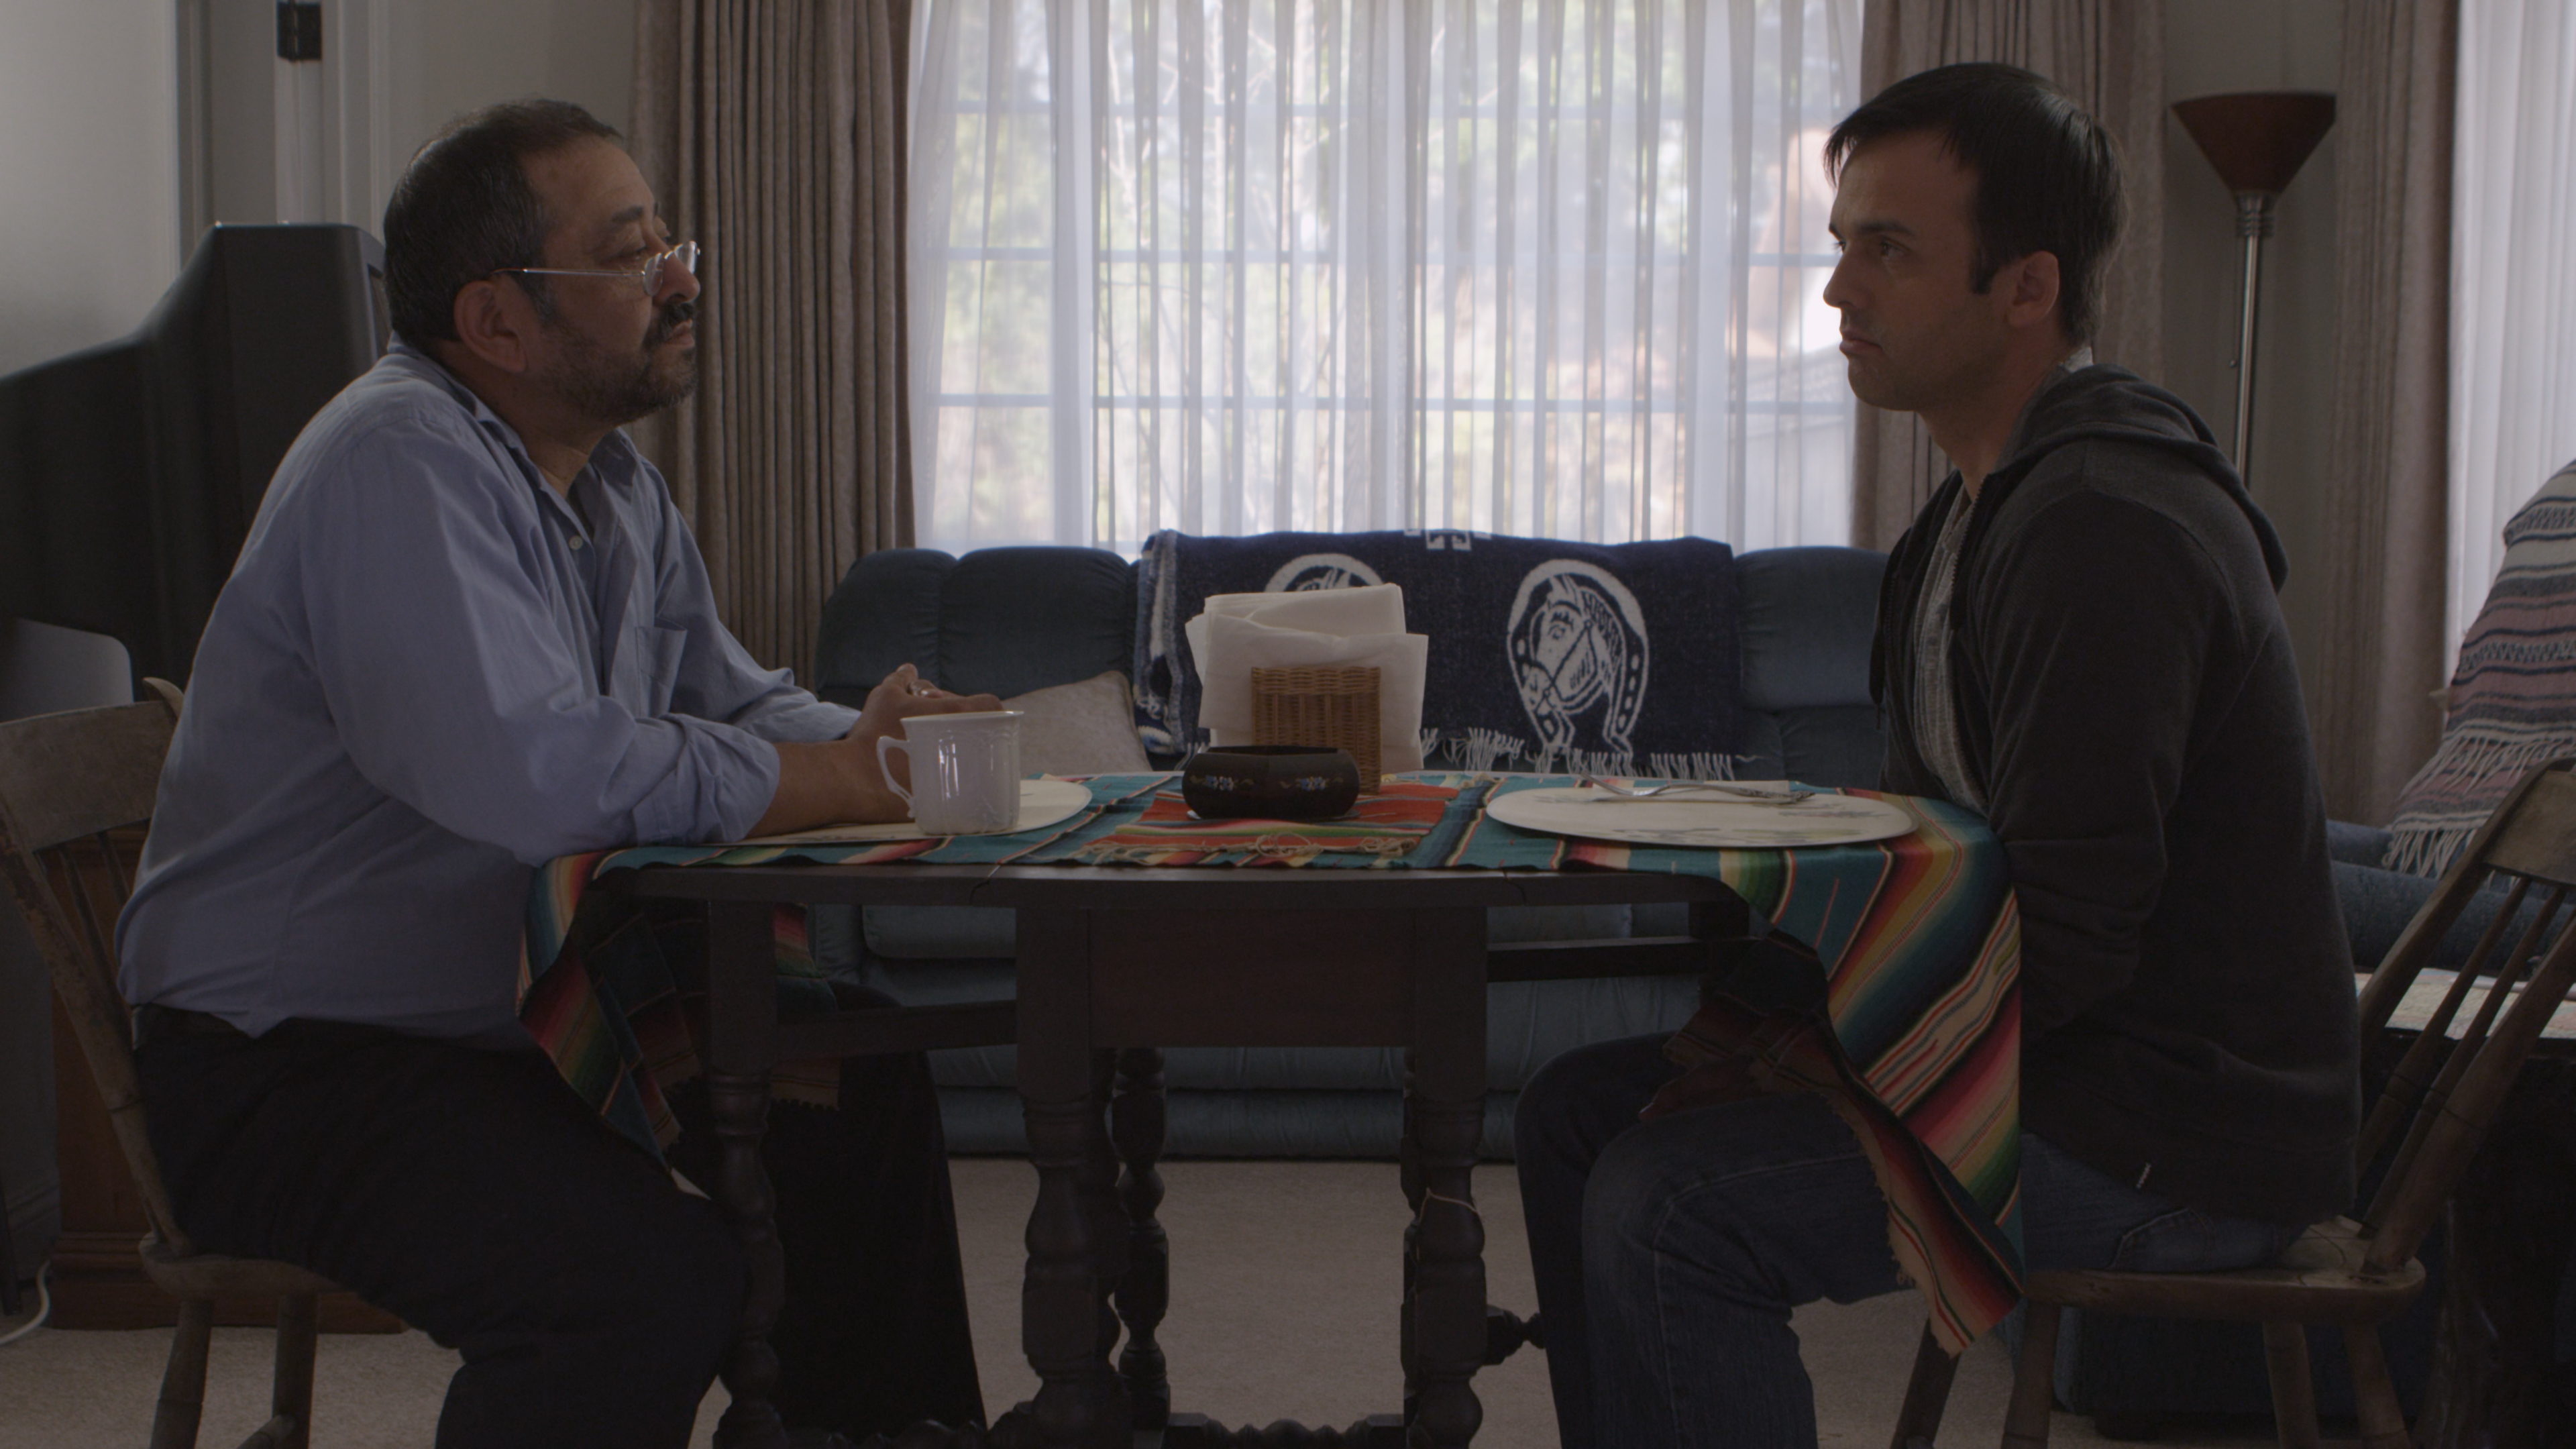 Alejandro Patino (left) and Forrest Hartl (right) in a scene from their short film